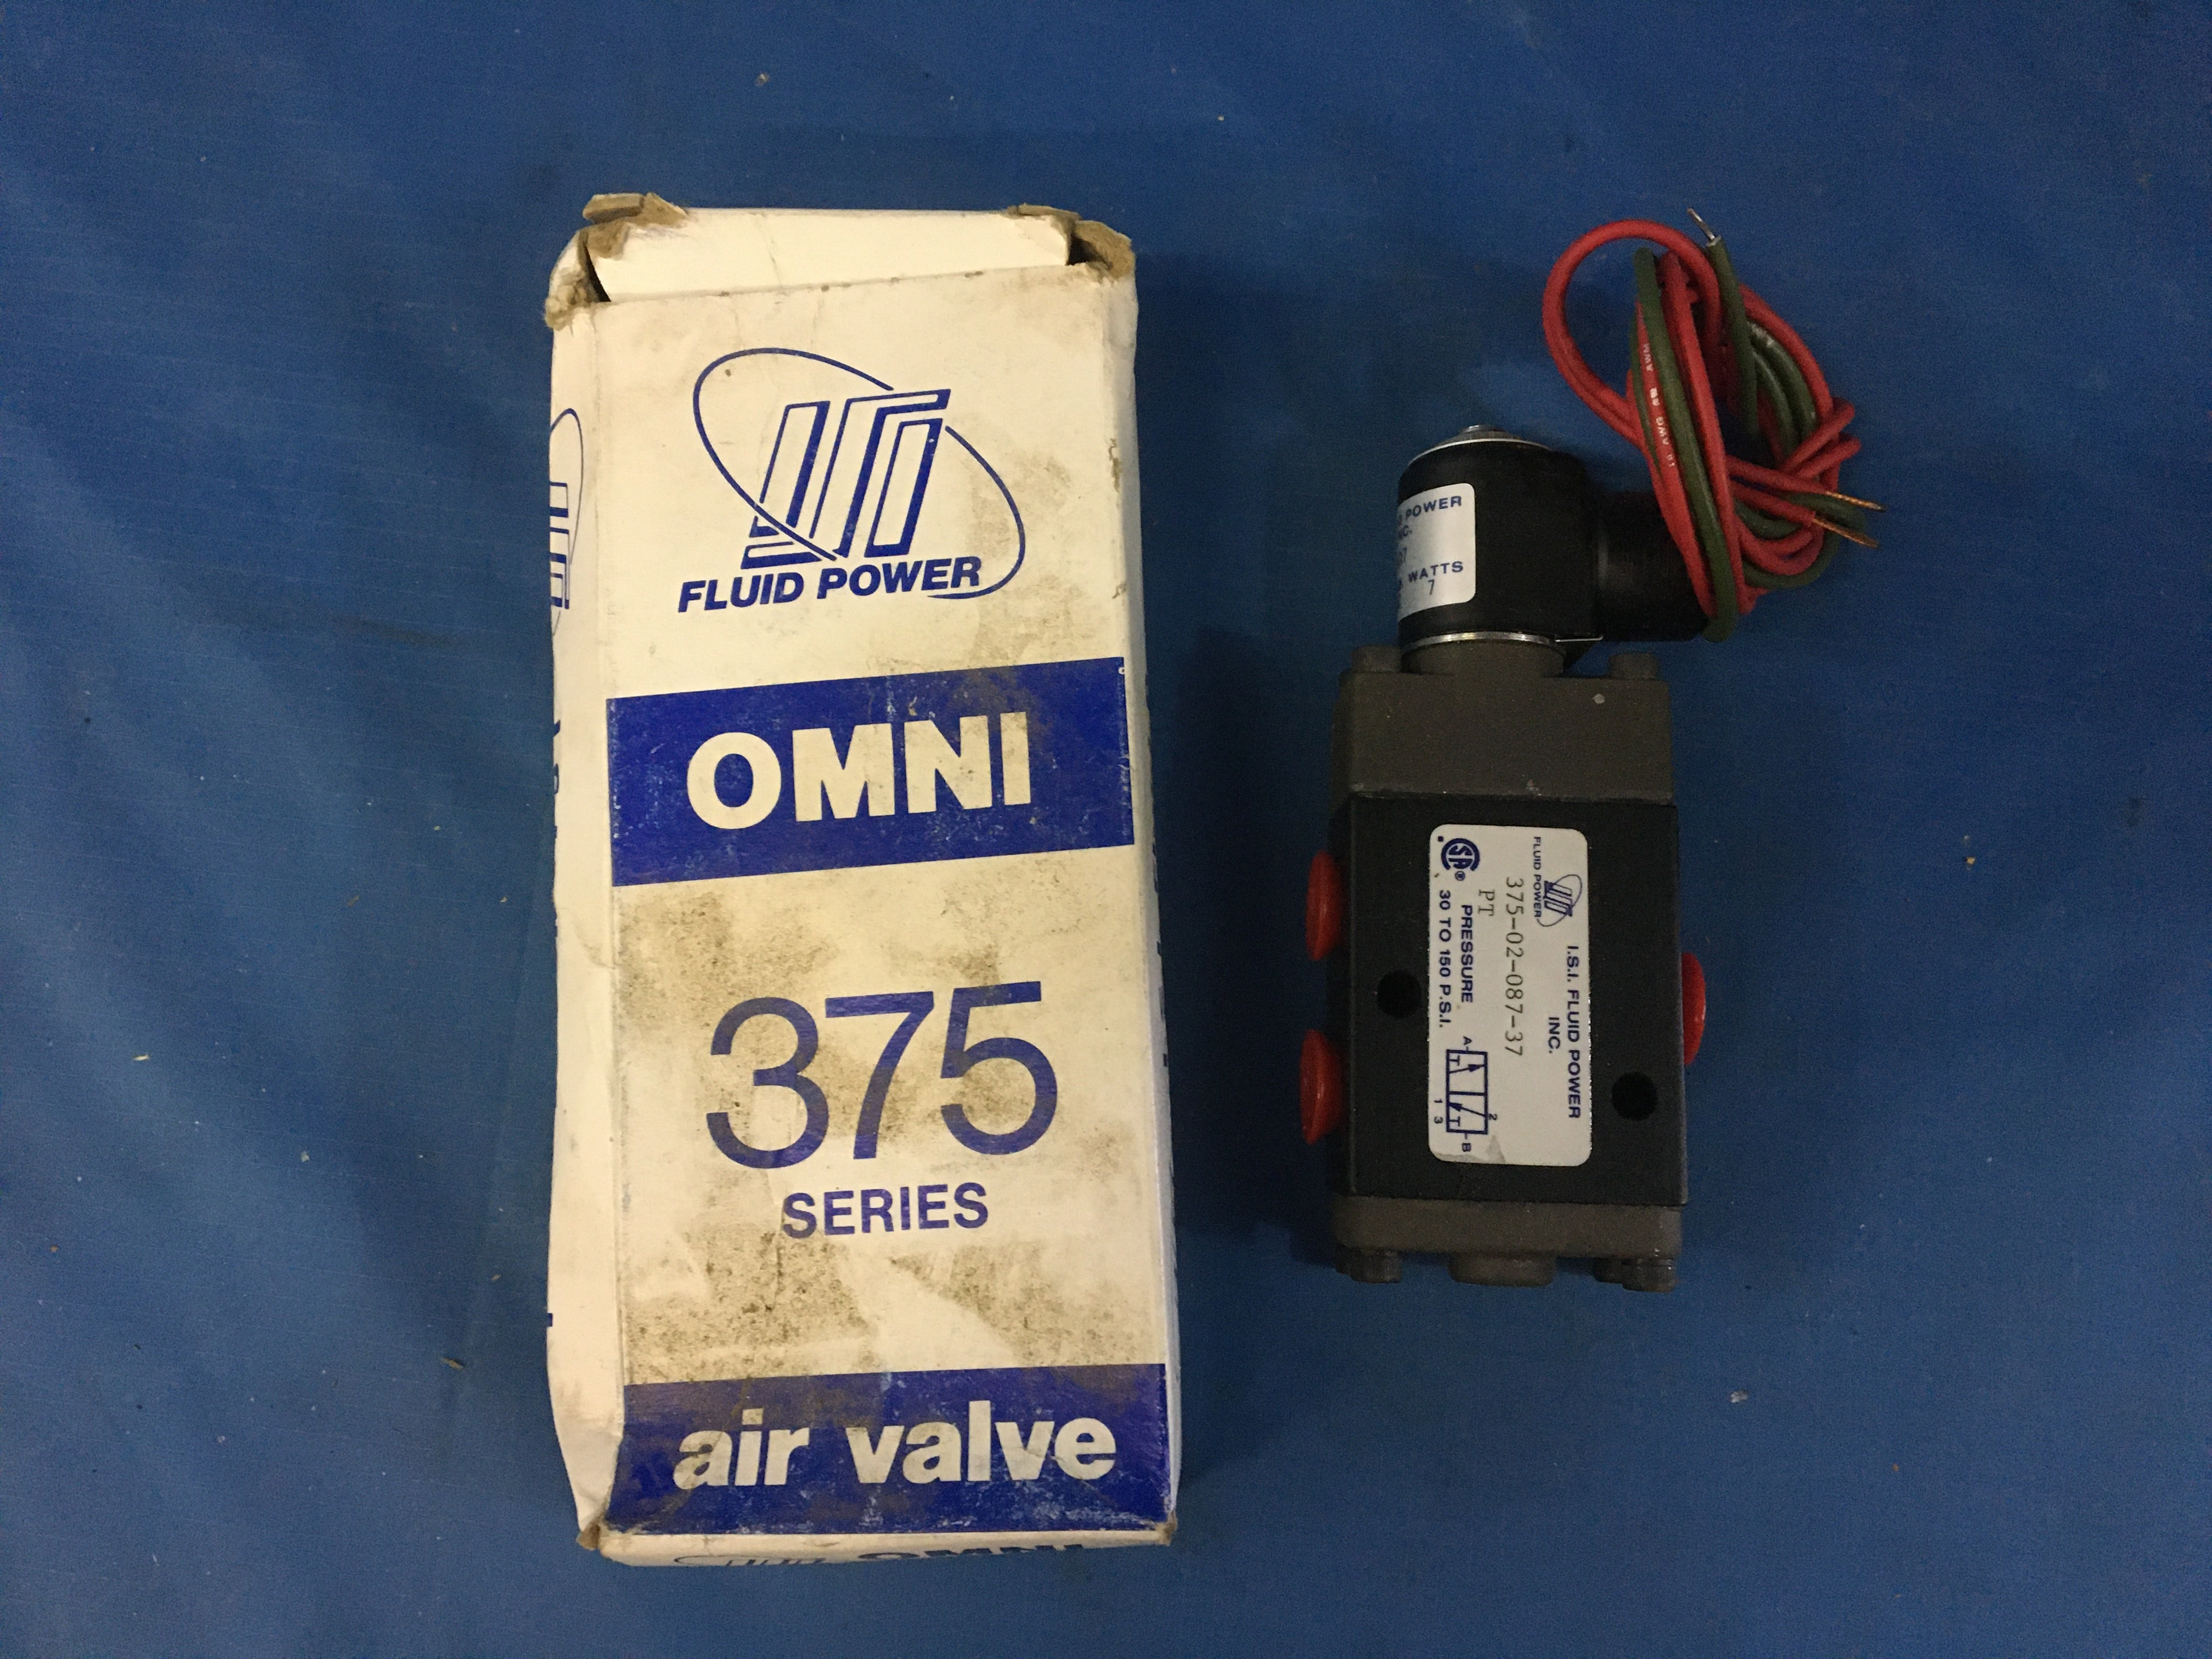 NOS 24V 3/8'' 3 Way 30-150PSI Aluminum Solenoid Air Valve Model:375-02-087-37 NSN:4810-01-287-7801 P/N:3750208137